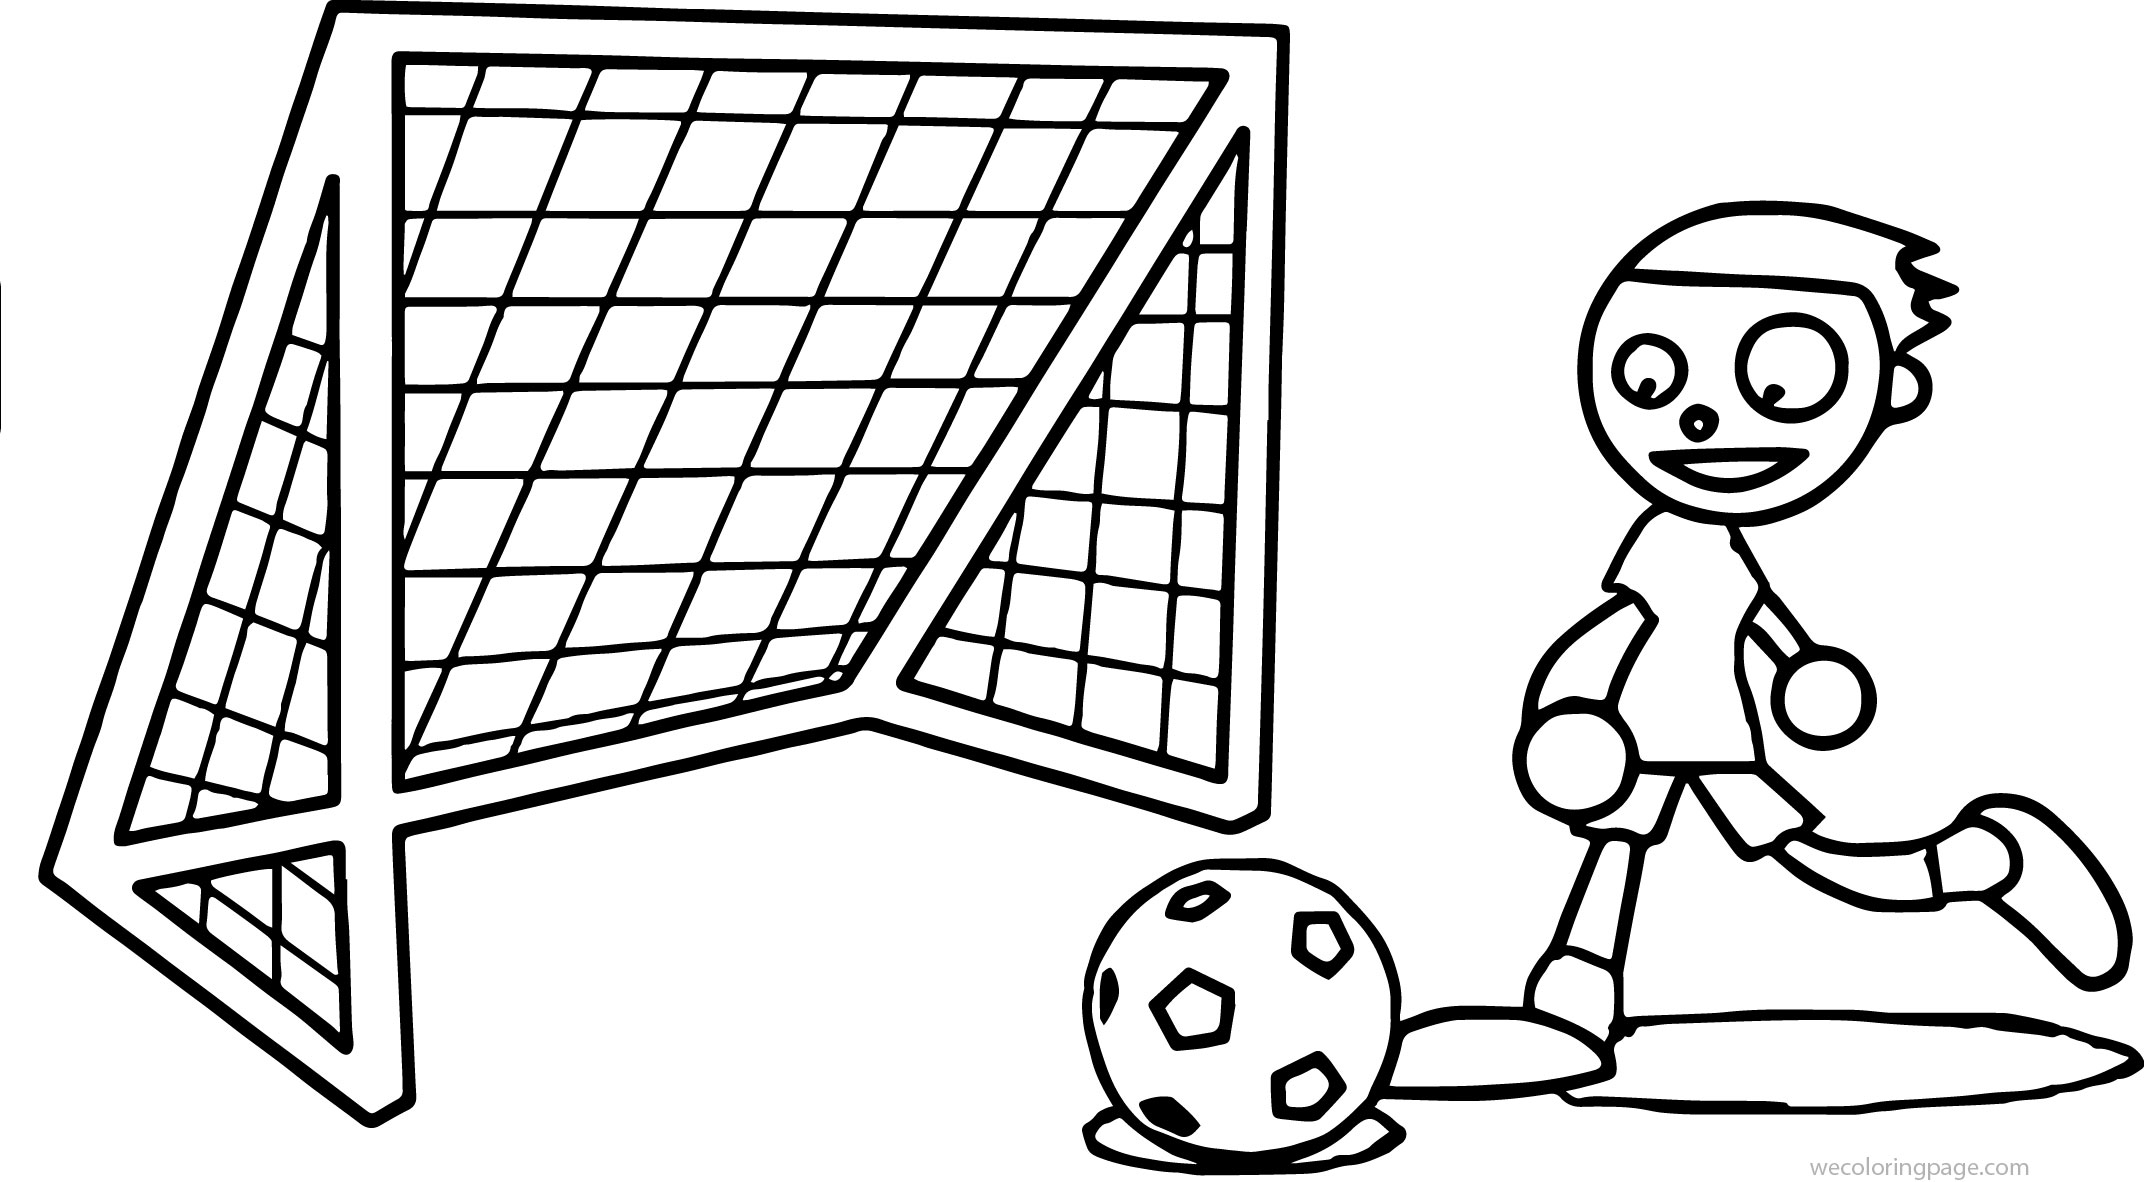 Pbs kids playing soccer coloring page for Soccer coloring pages for kids